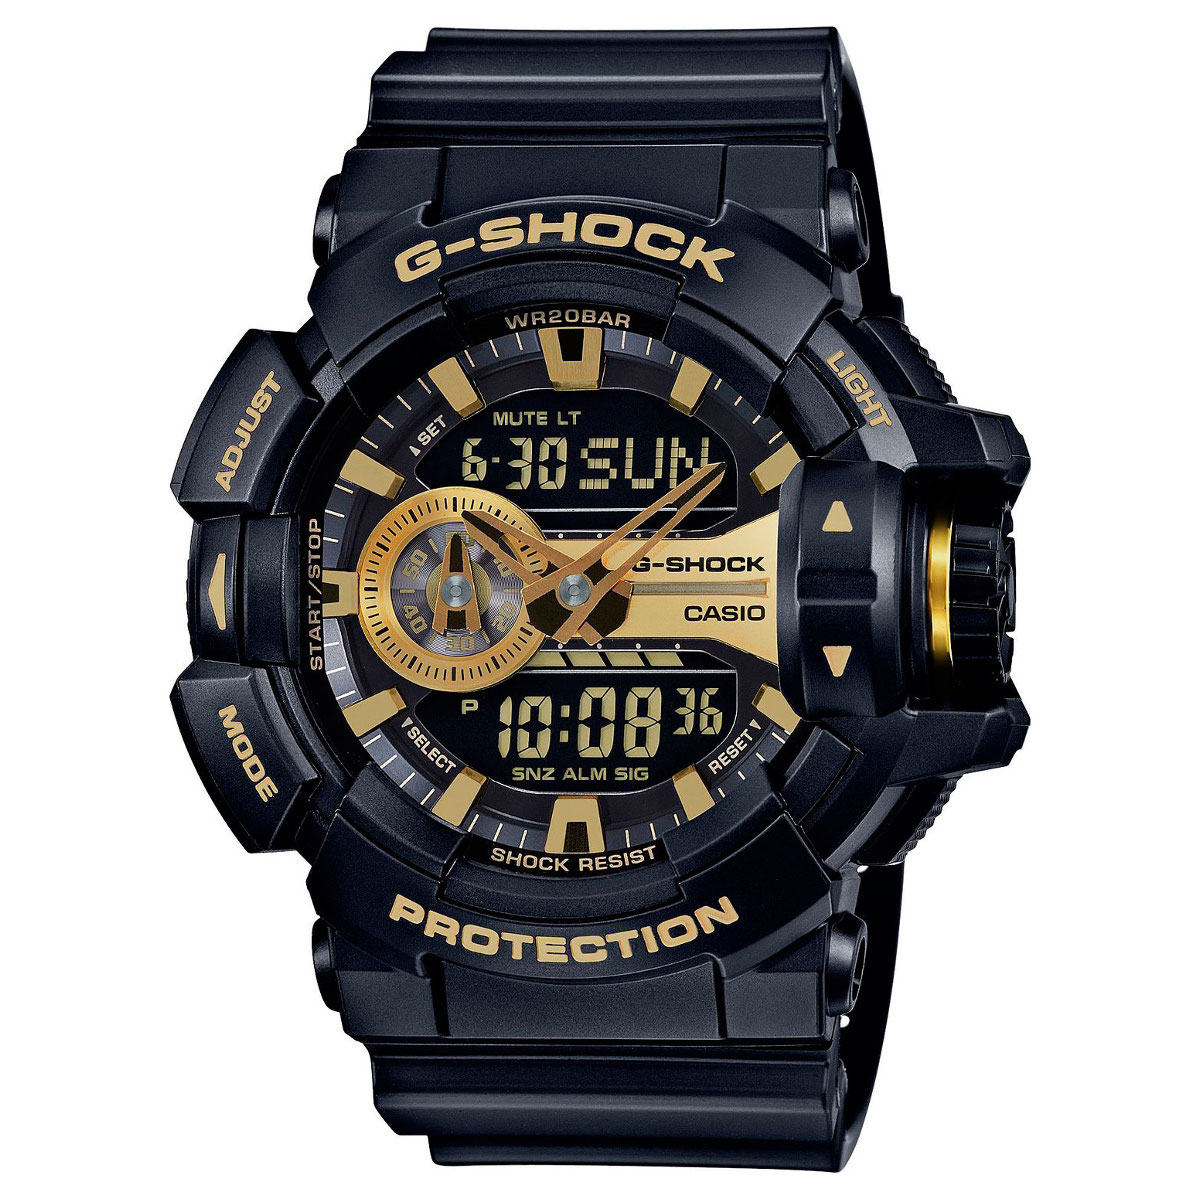 Casio G-shock GA-400GB-1A9 от Консул